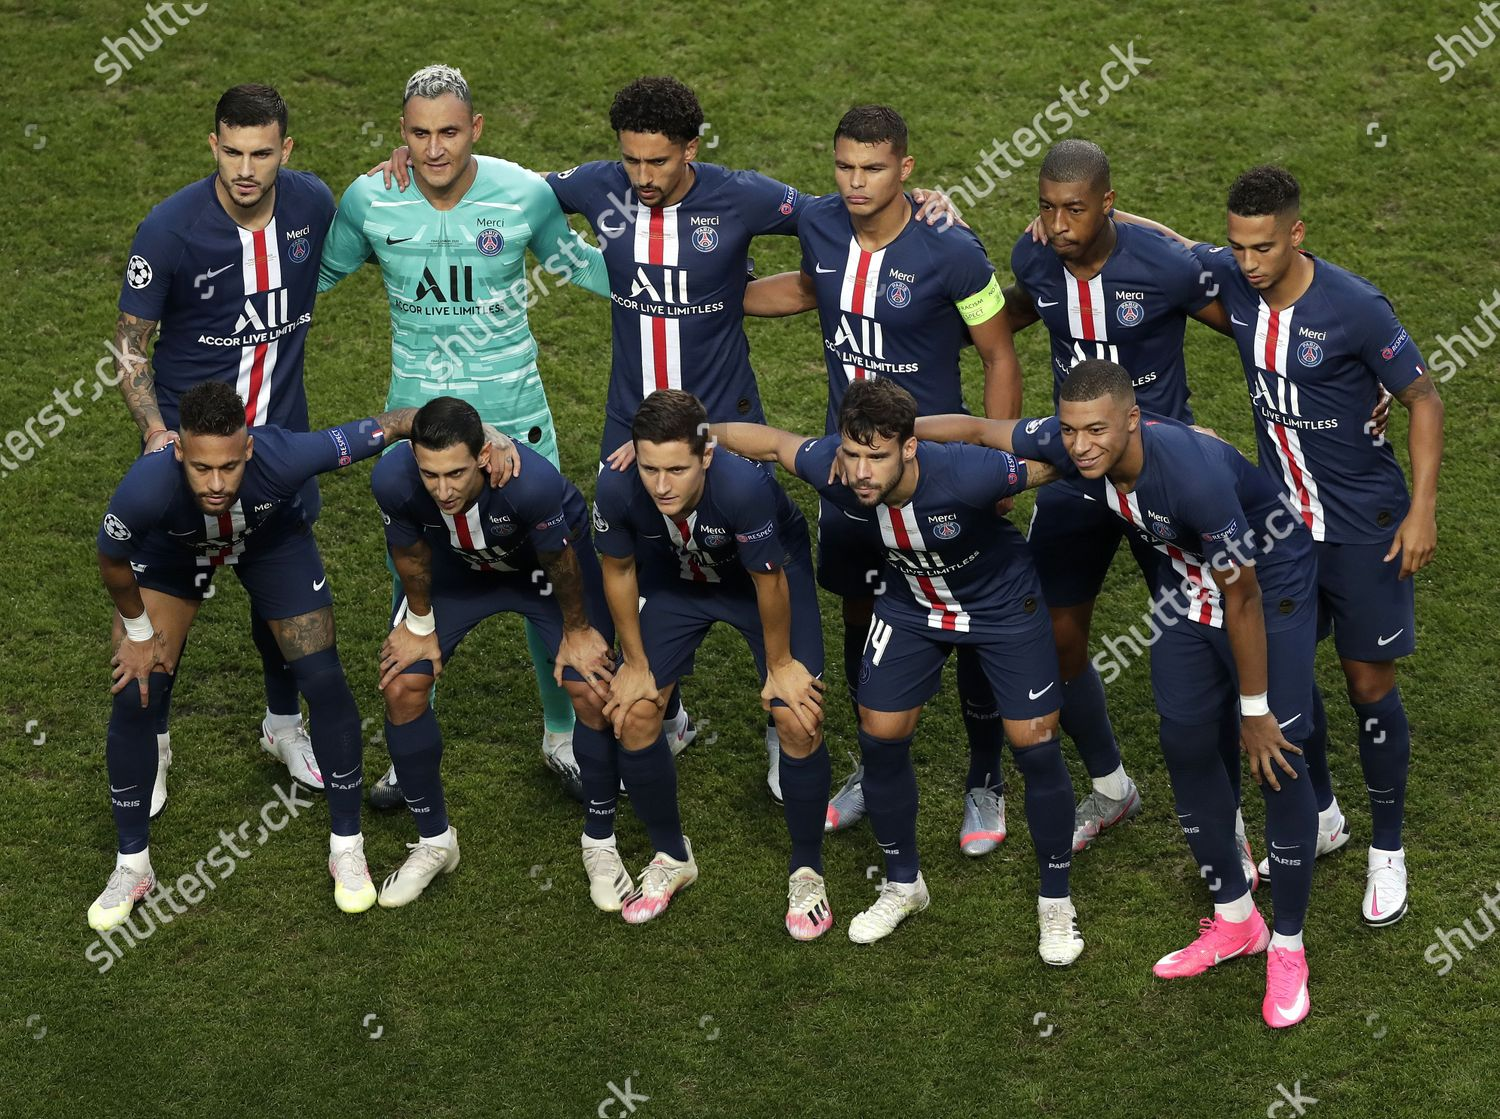 Team Psg Before Uefa Champions League Final Editorial Stock Photo Stock Image Shutterstock